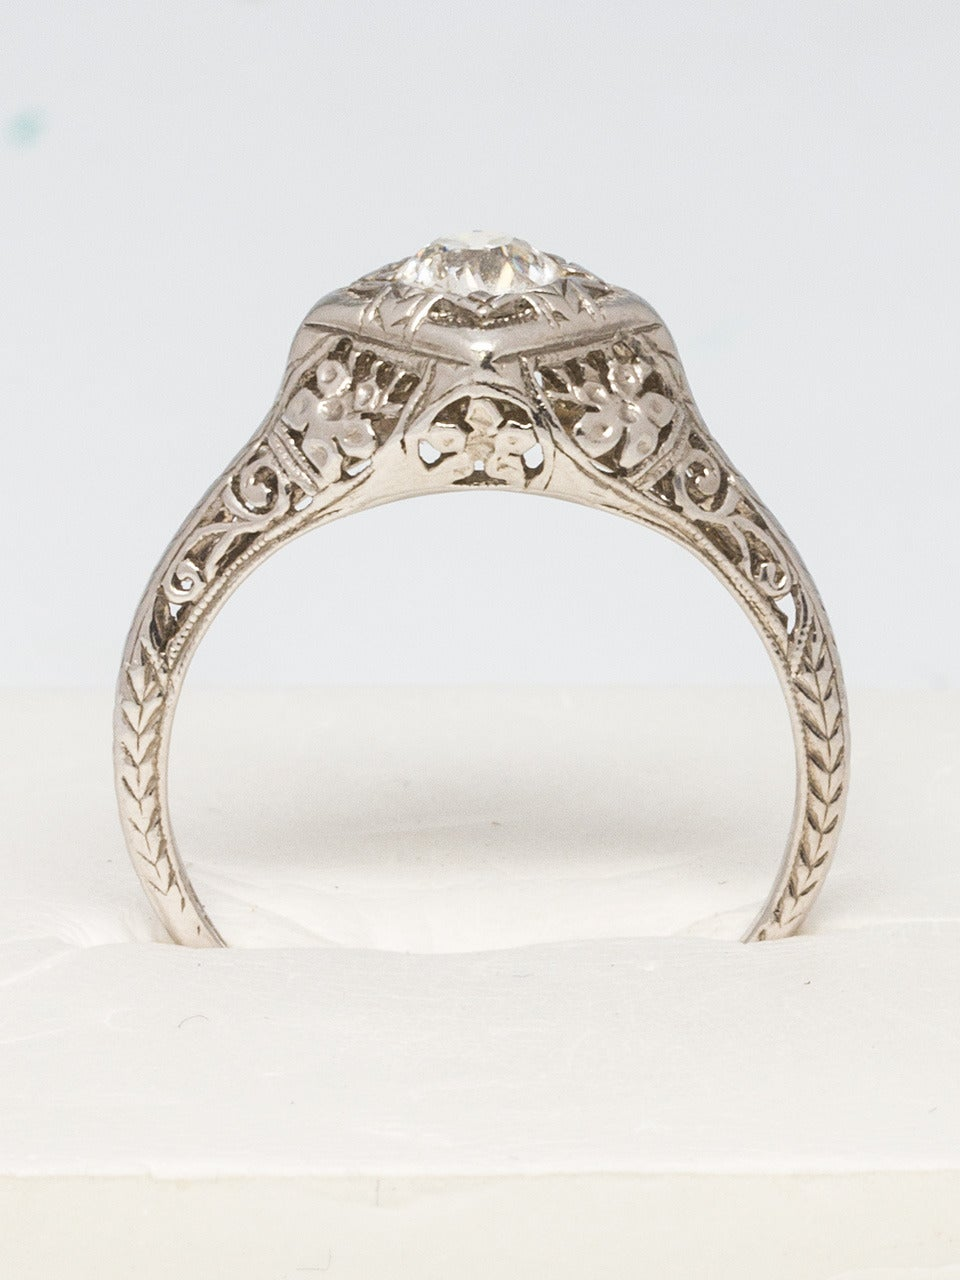 Platinum filigree solitaire ring with center 0.47 carat old European cut diamond, J color and SI clarity. Setting showcases pierced flowers and scrolled detail with hand engraving. Size 6.75 circa 1920's  As a special offering for our 1stdibs